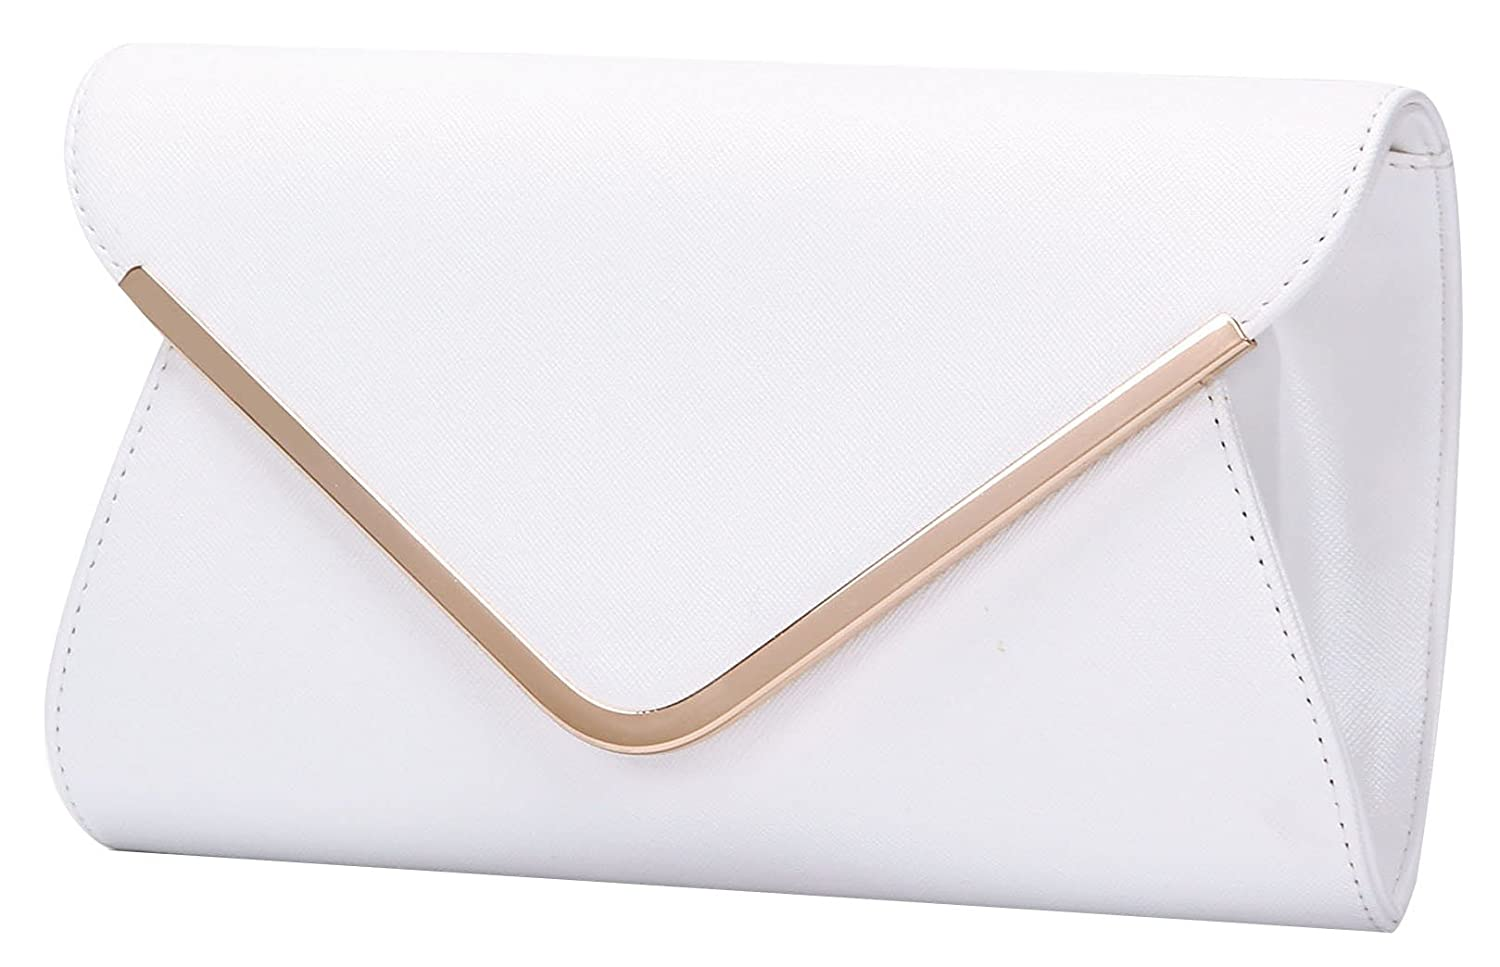 ILISHOP High-end Brand Evening Envelope Clutches Bag for Women New Handbags Shouder Bags NB051-S03